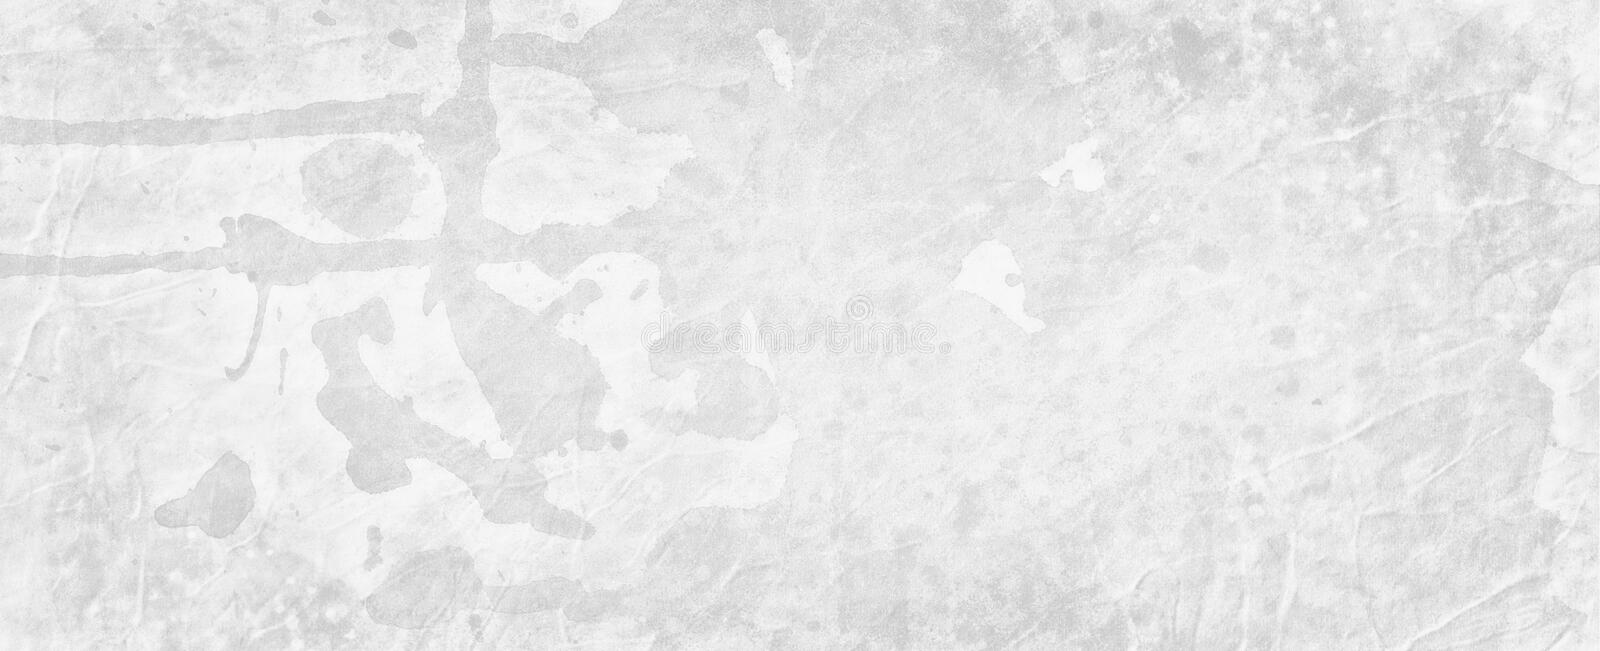 Old white background grunge with watercolor drips drops blobs and spatter and marbled stained vintage border texture. Design stock illustration